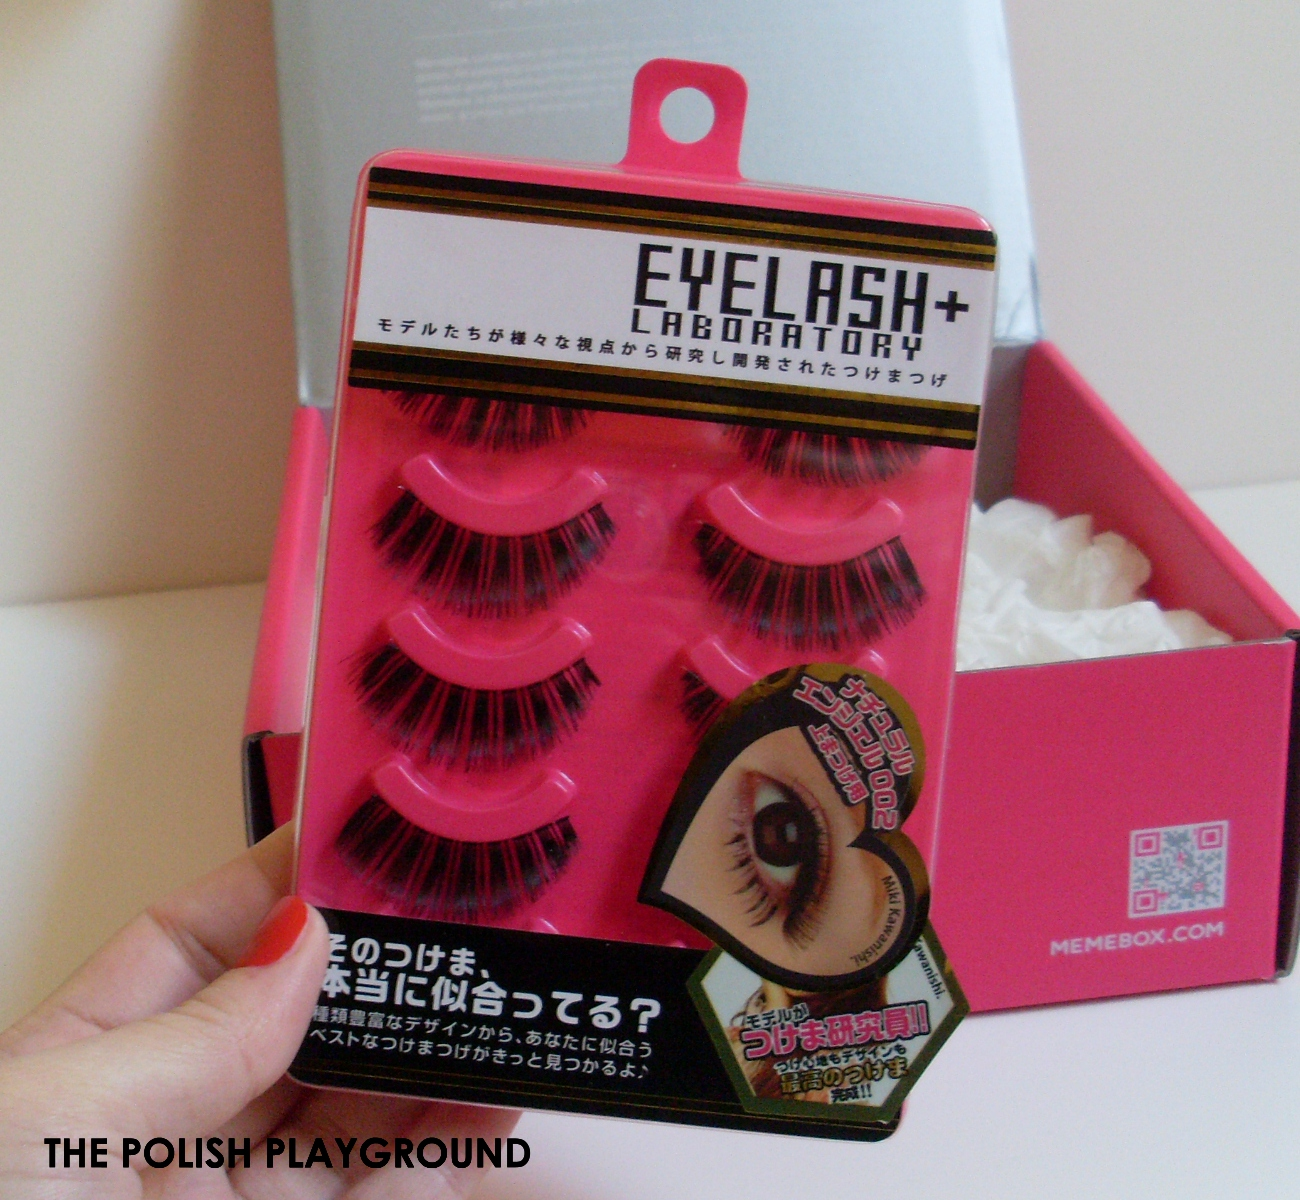 Memebox 10 Miniute Box Unboxing - Laboratory Eyelash - 5 Pairs